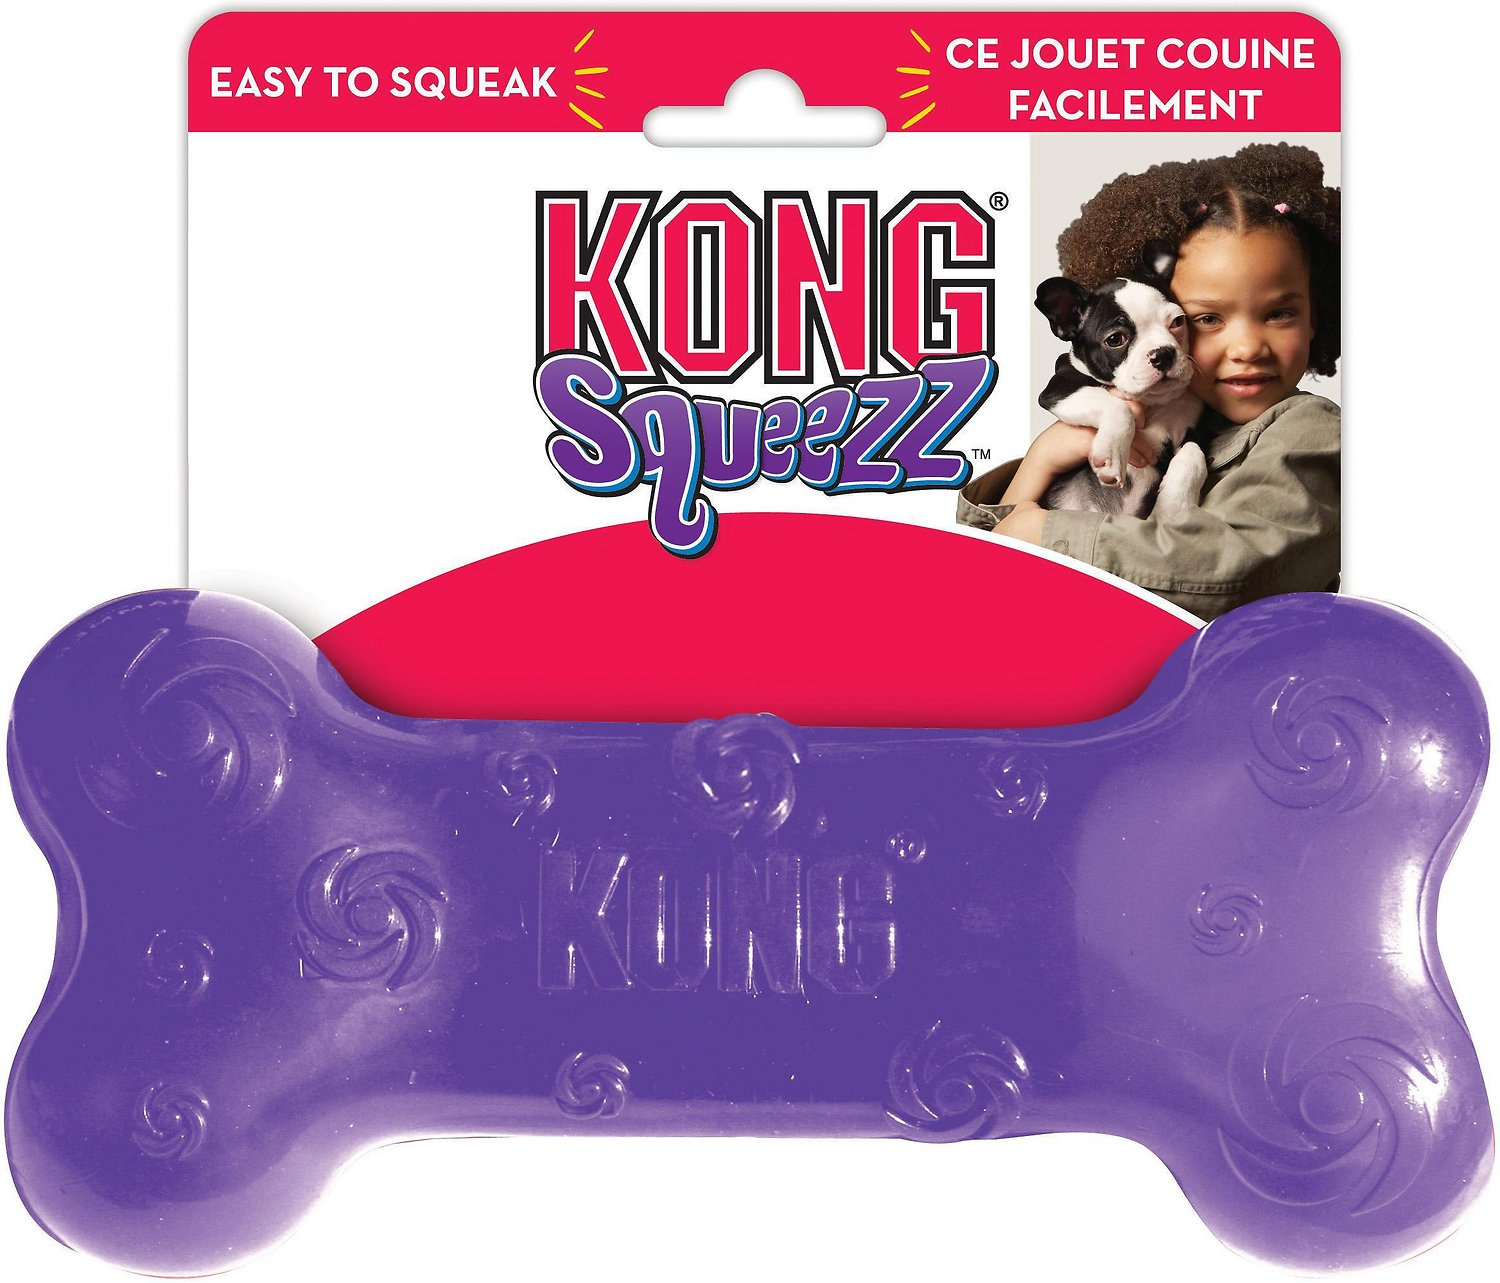 KONG Squeezz Bone Dog Toy, Color Varies Image